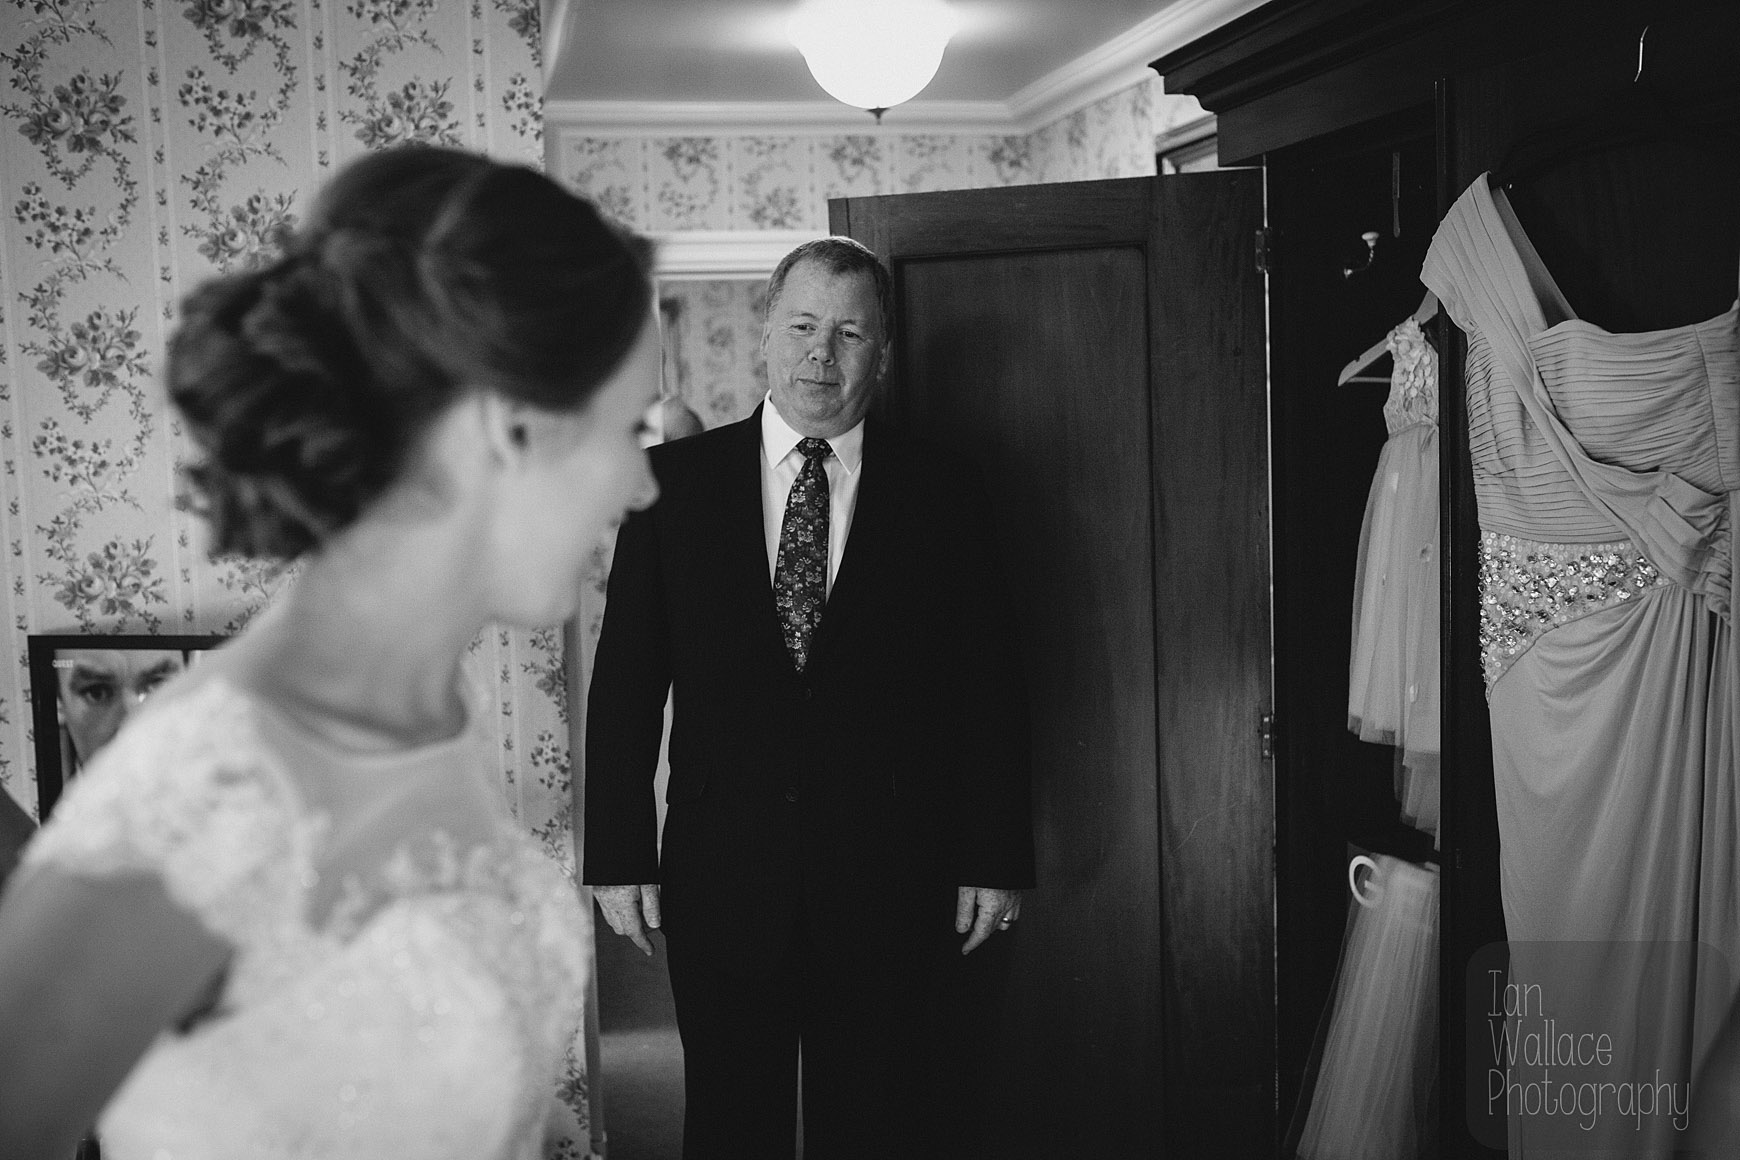 Father of the Bride arrives and sees his daughter in her dress for the first time.